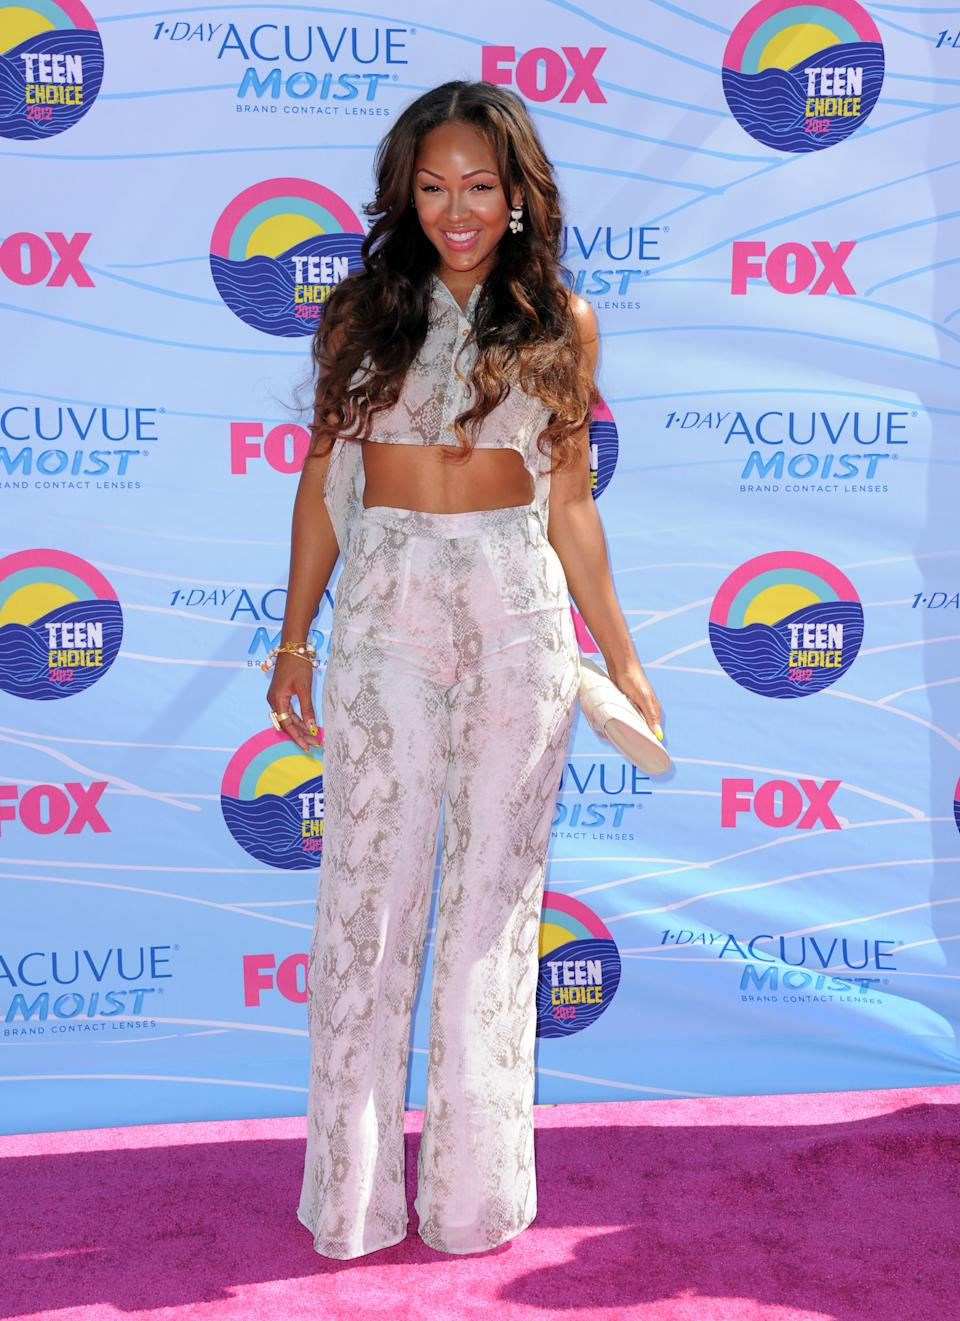 Meagan Good arrives at the Teen Choice Awards on Sunday, July 22, 2012, in Universal City, Calif. (Photo by Jordan Strauss/Invision/AP)